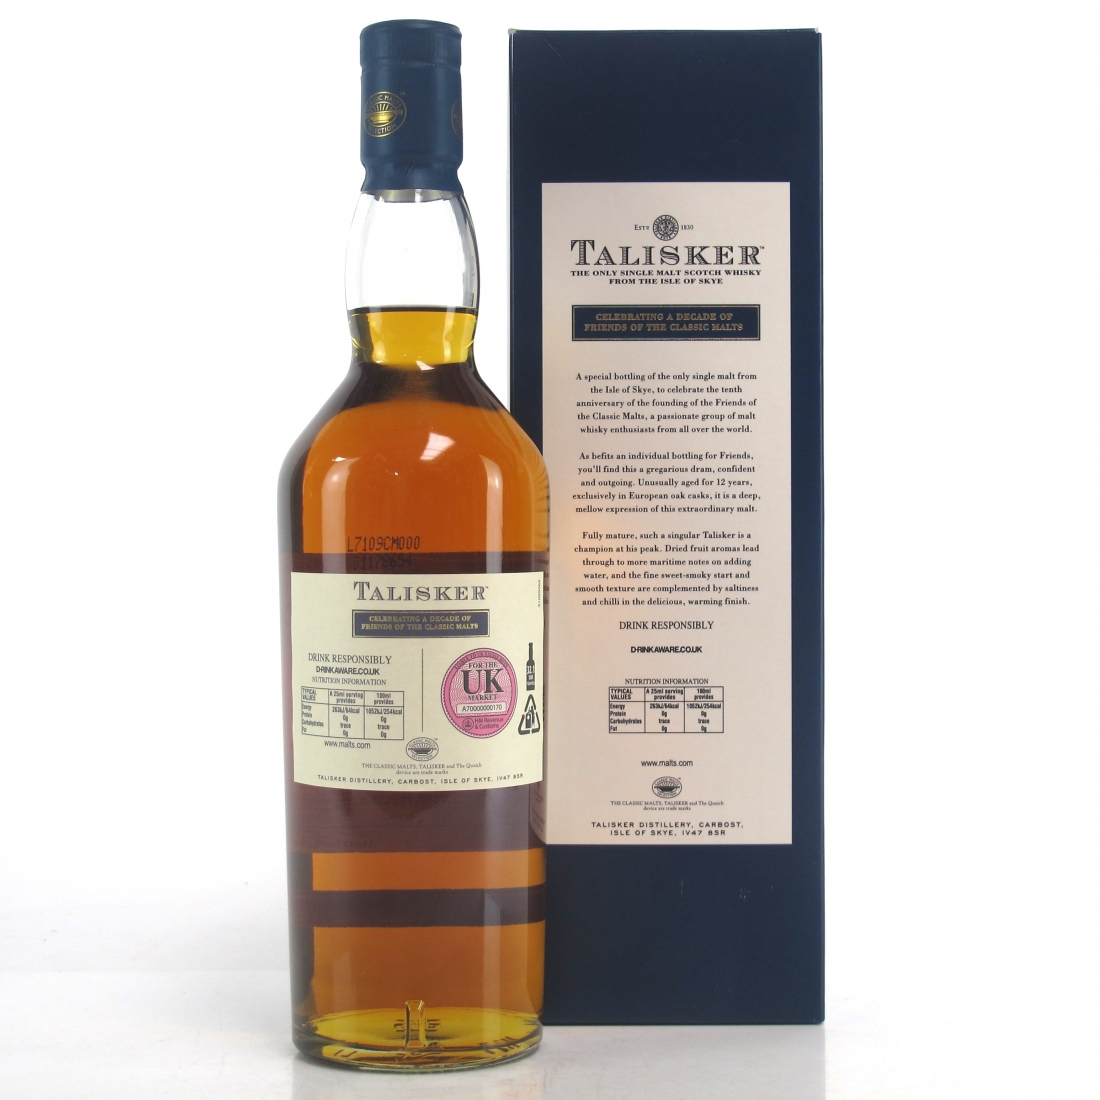 Talisker 12 Year Old / A Decade of the Friends of the Classic Malts